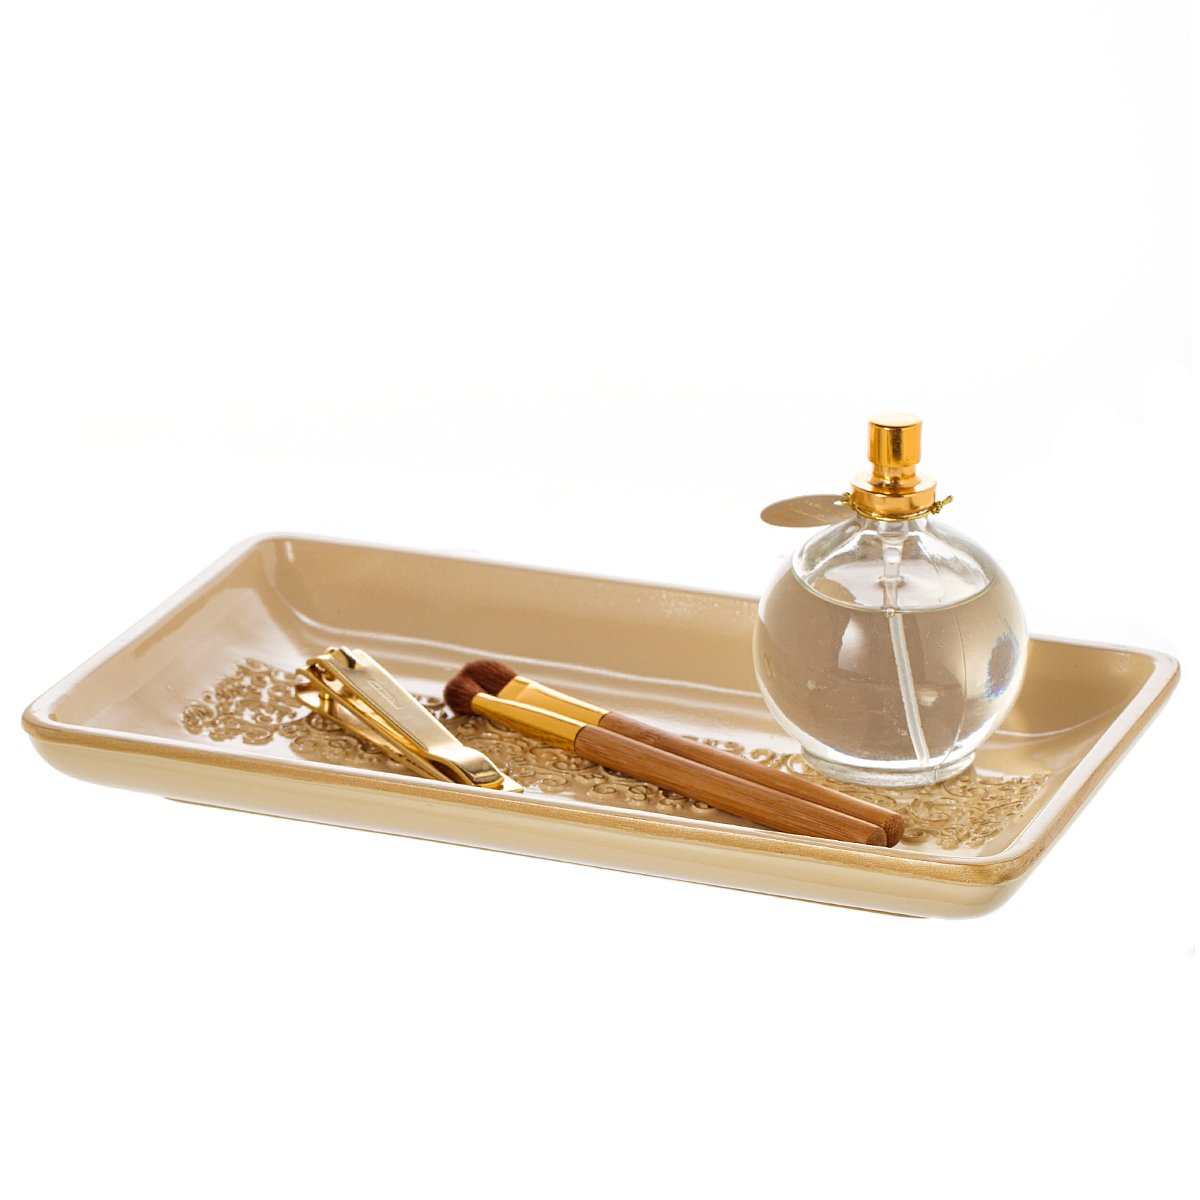 vanity tray for dresser decorative cosmetics organizer guest towel holder tray for arranging perfume jewelry makeup elegant bathroom accessories